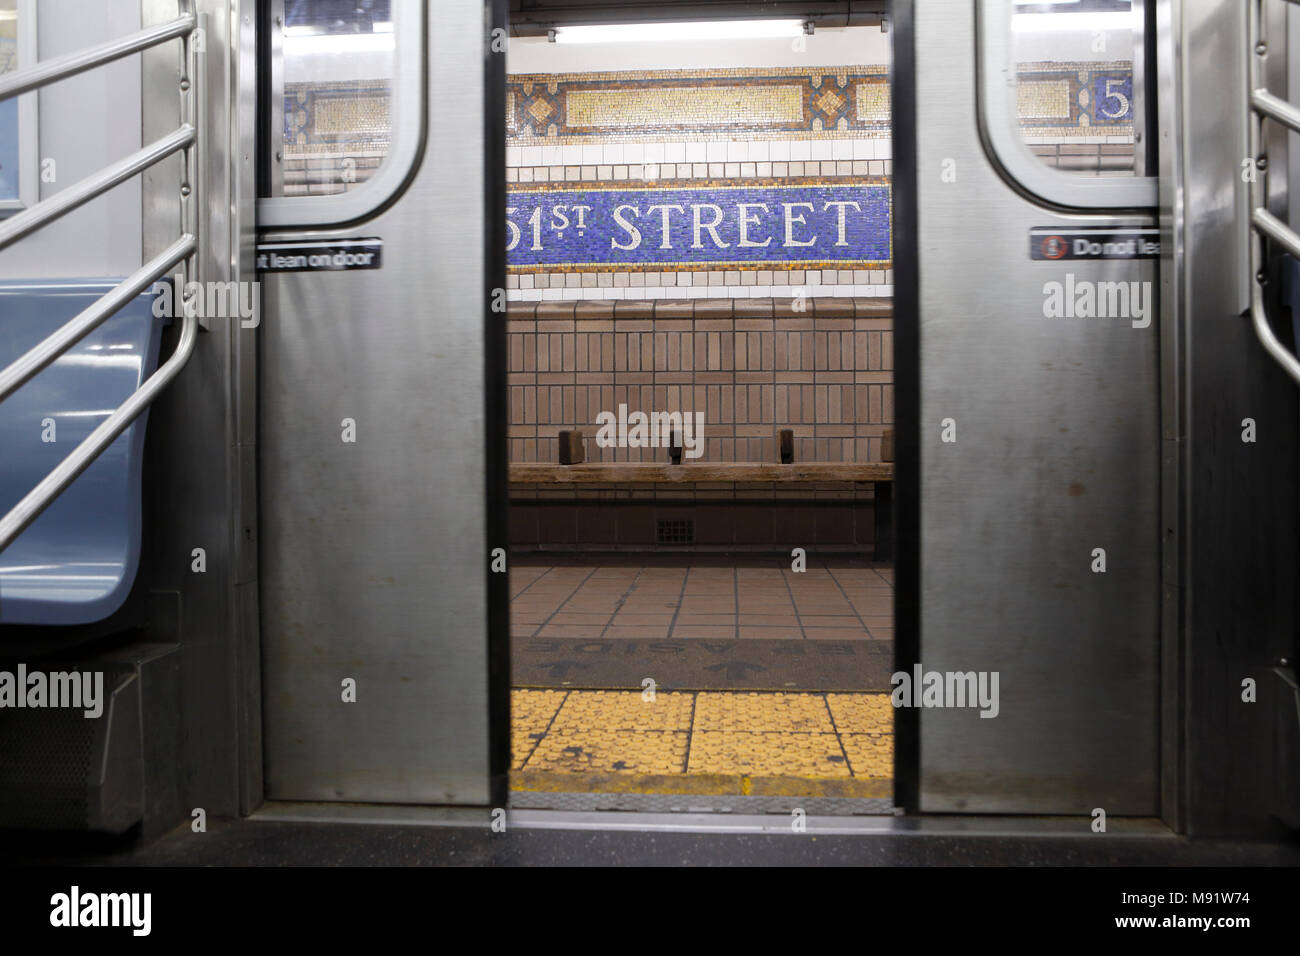 Opening doors of a NY subway train at the 51st Street station in New York City - Stock Image